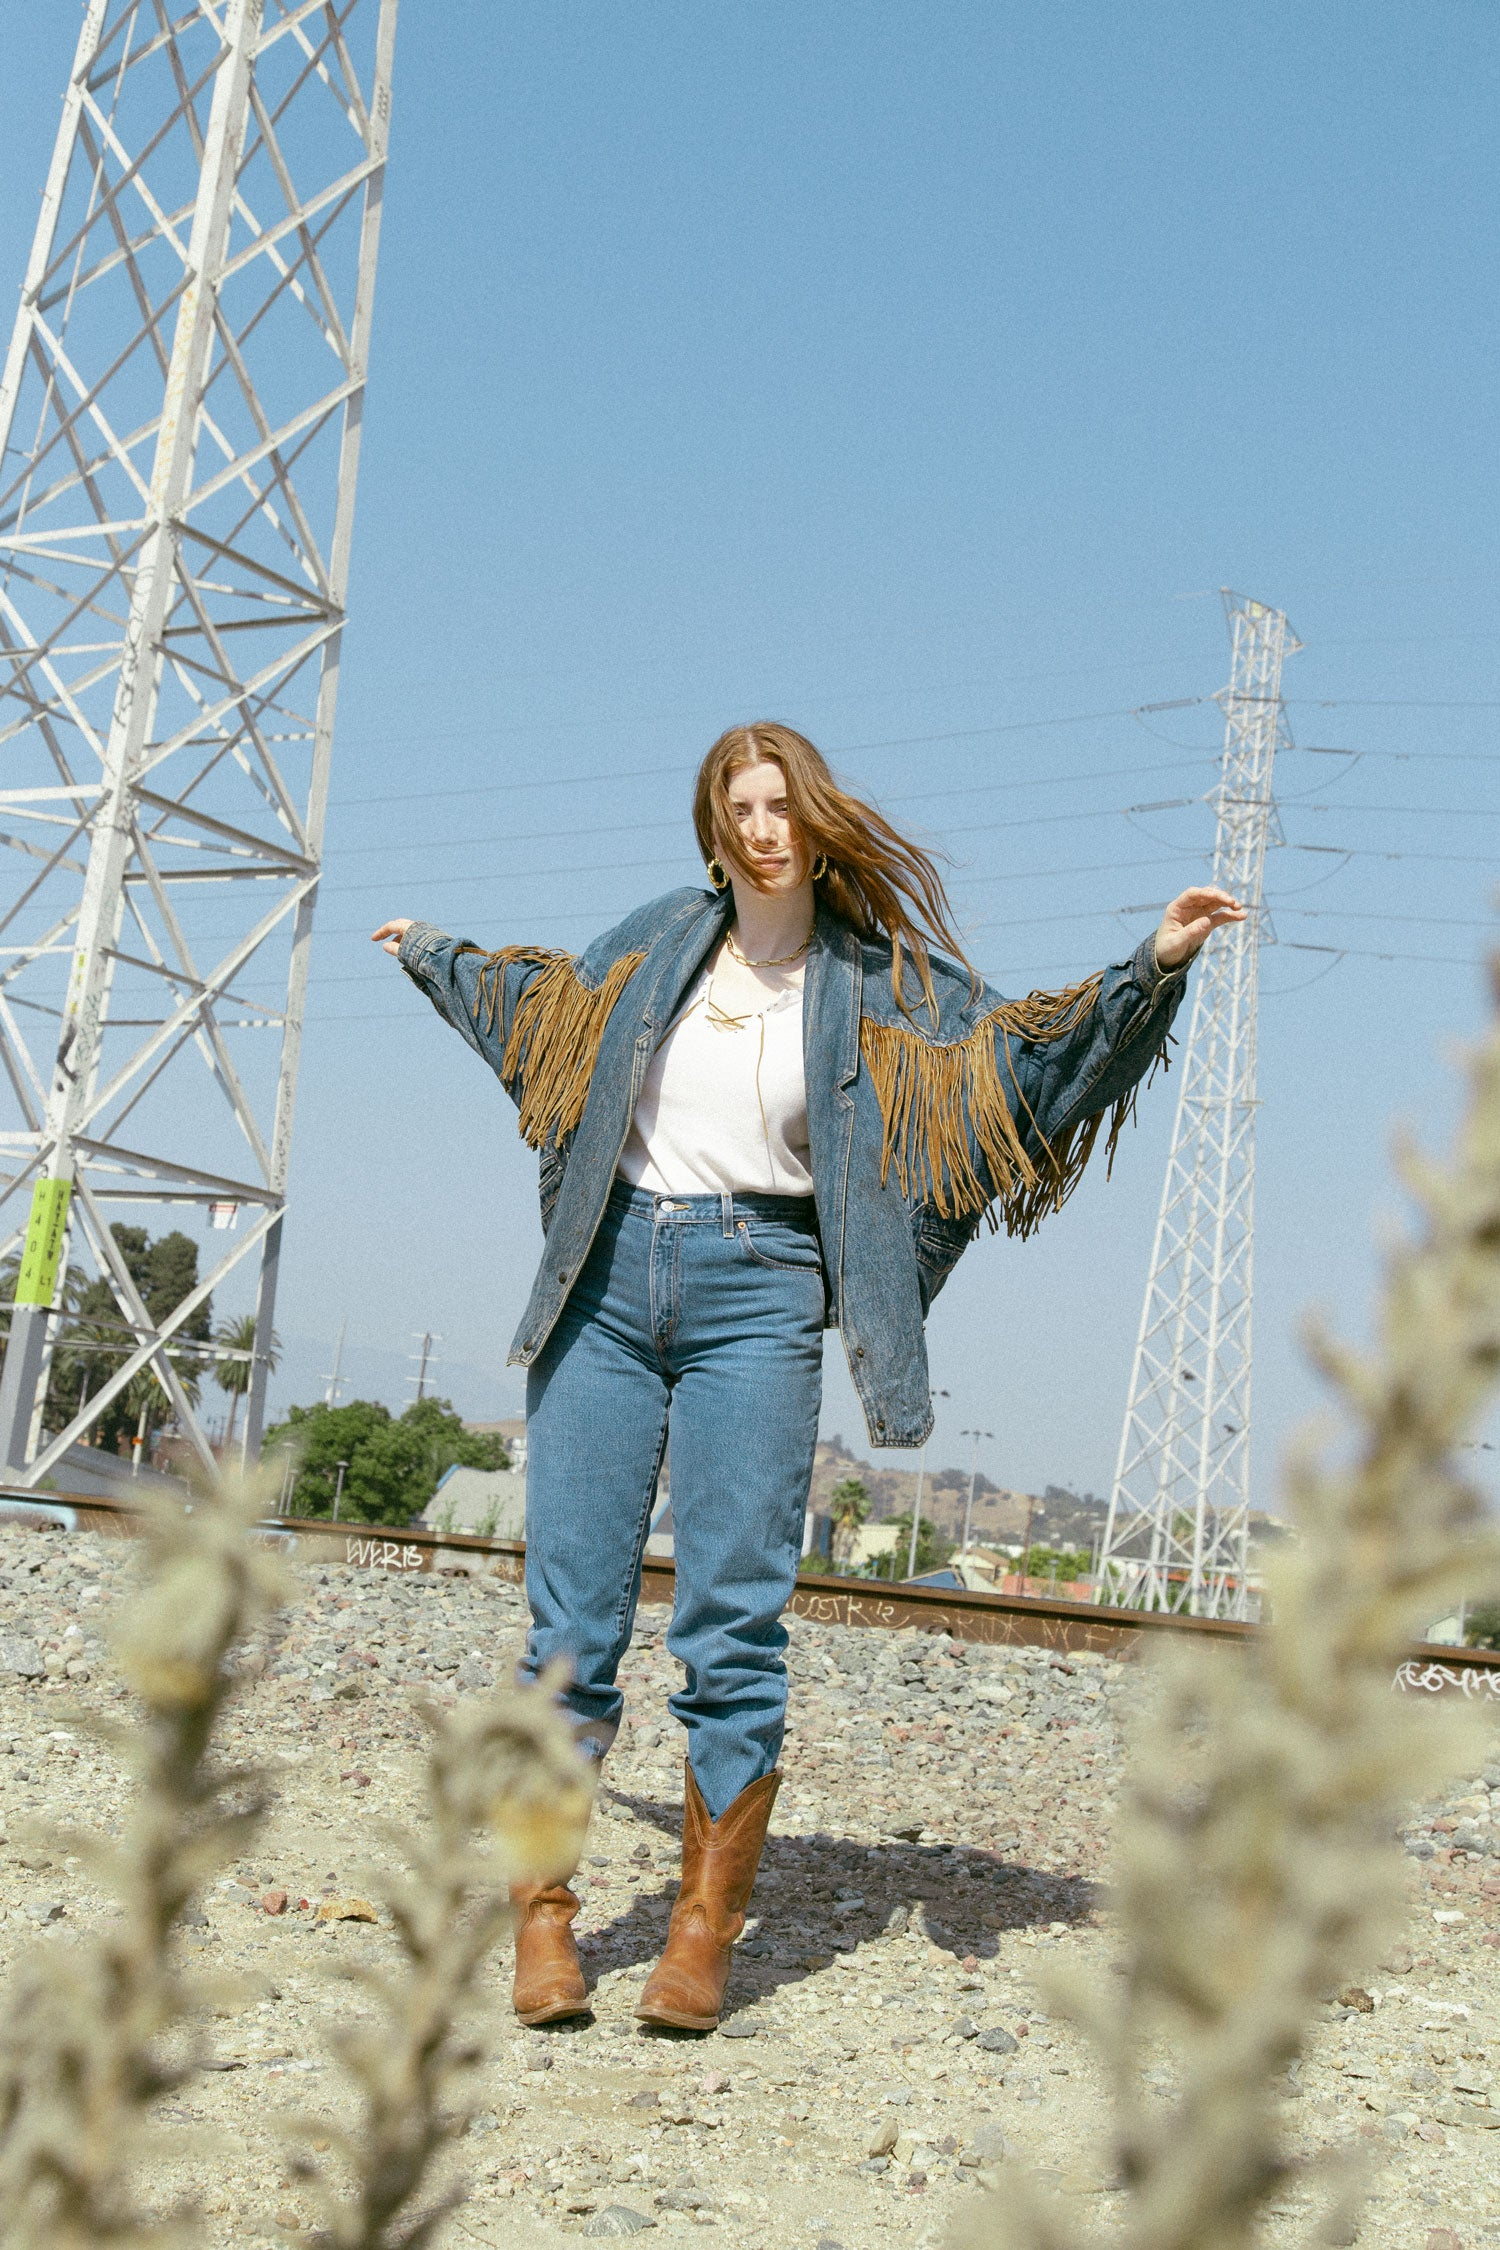 Woman in vintage 90s fringe jacket and high waisted levi's, standing in front of train tracks